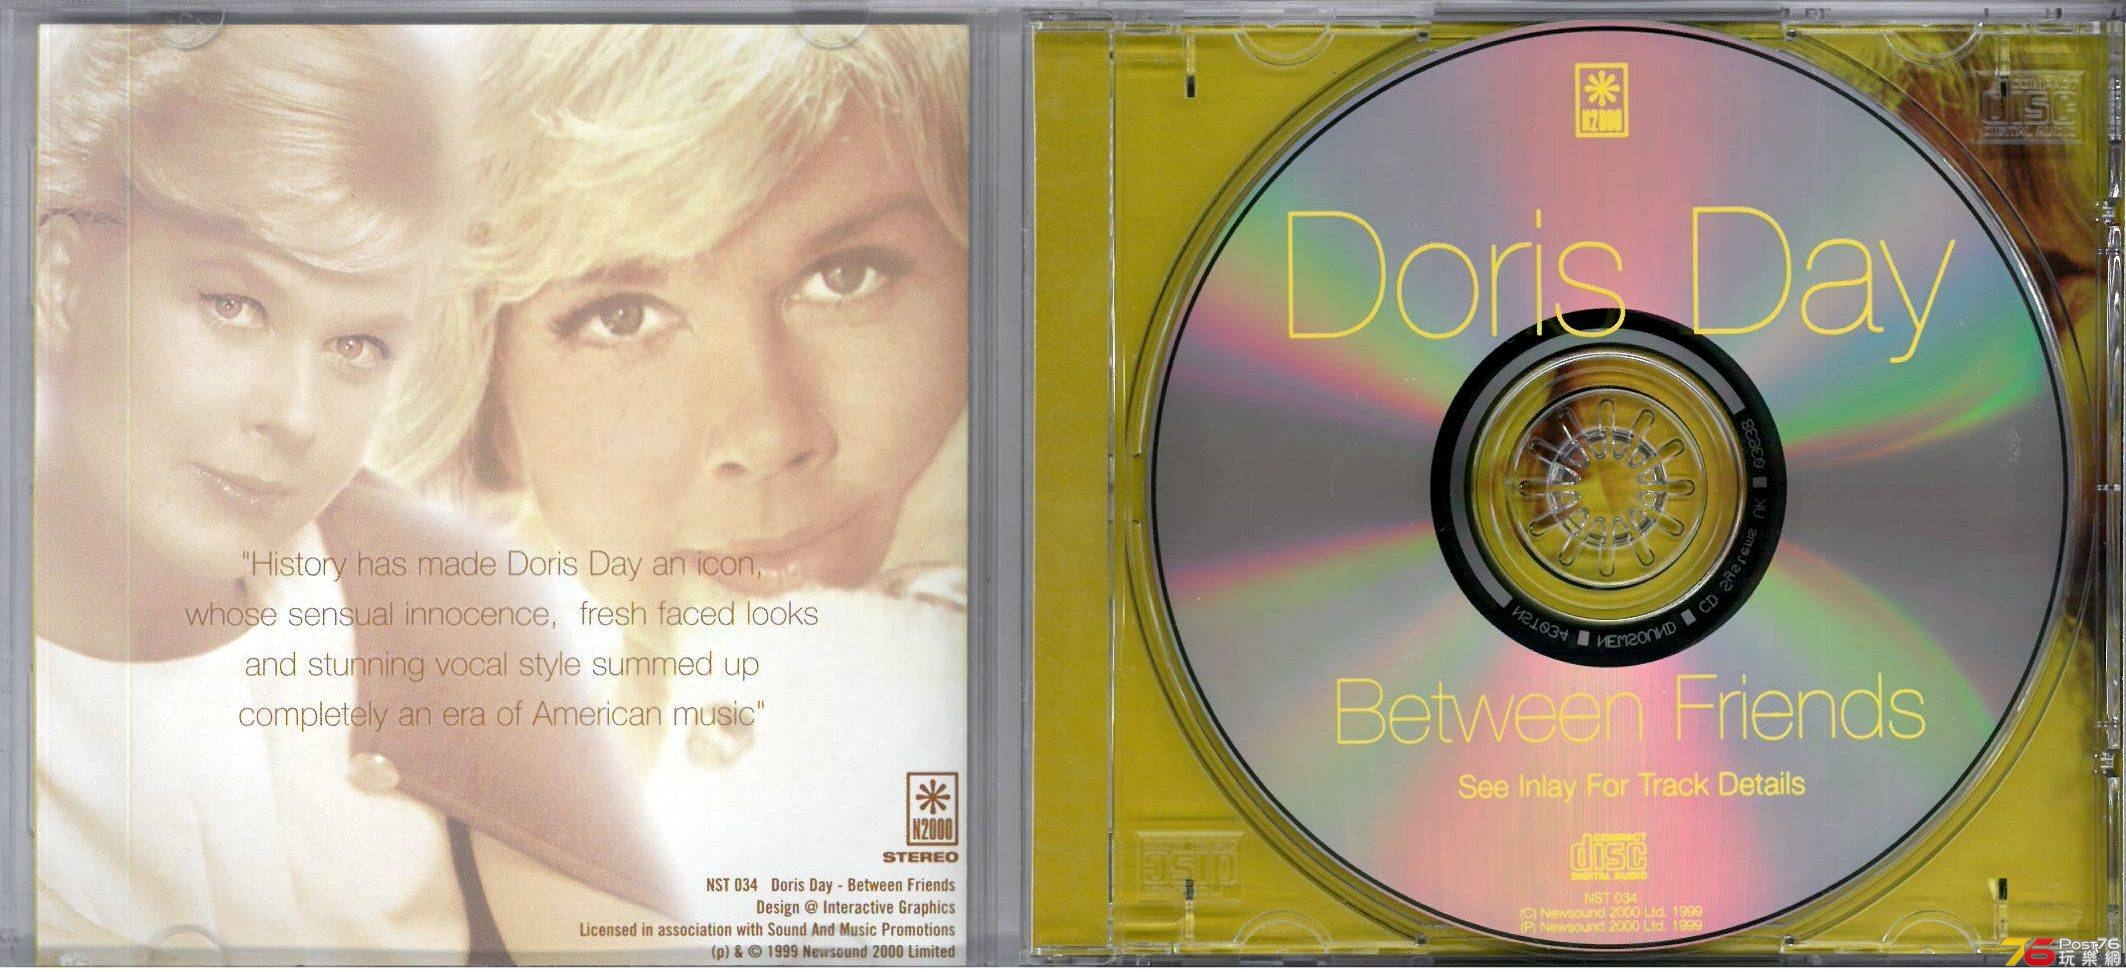 Doris Day  Between Friends ab.jpg